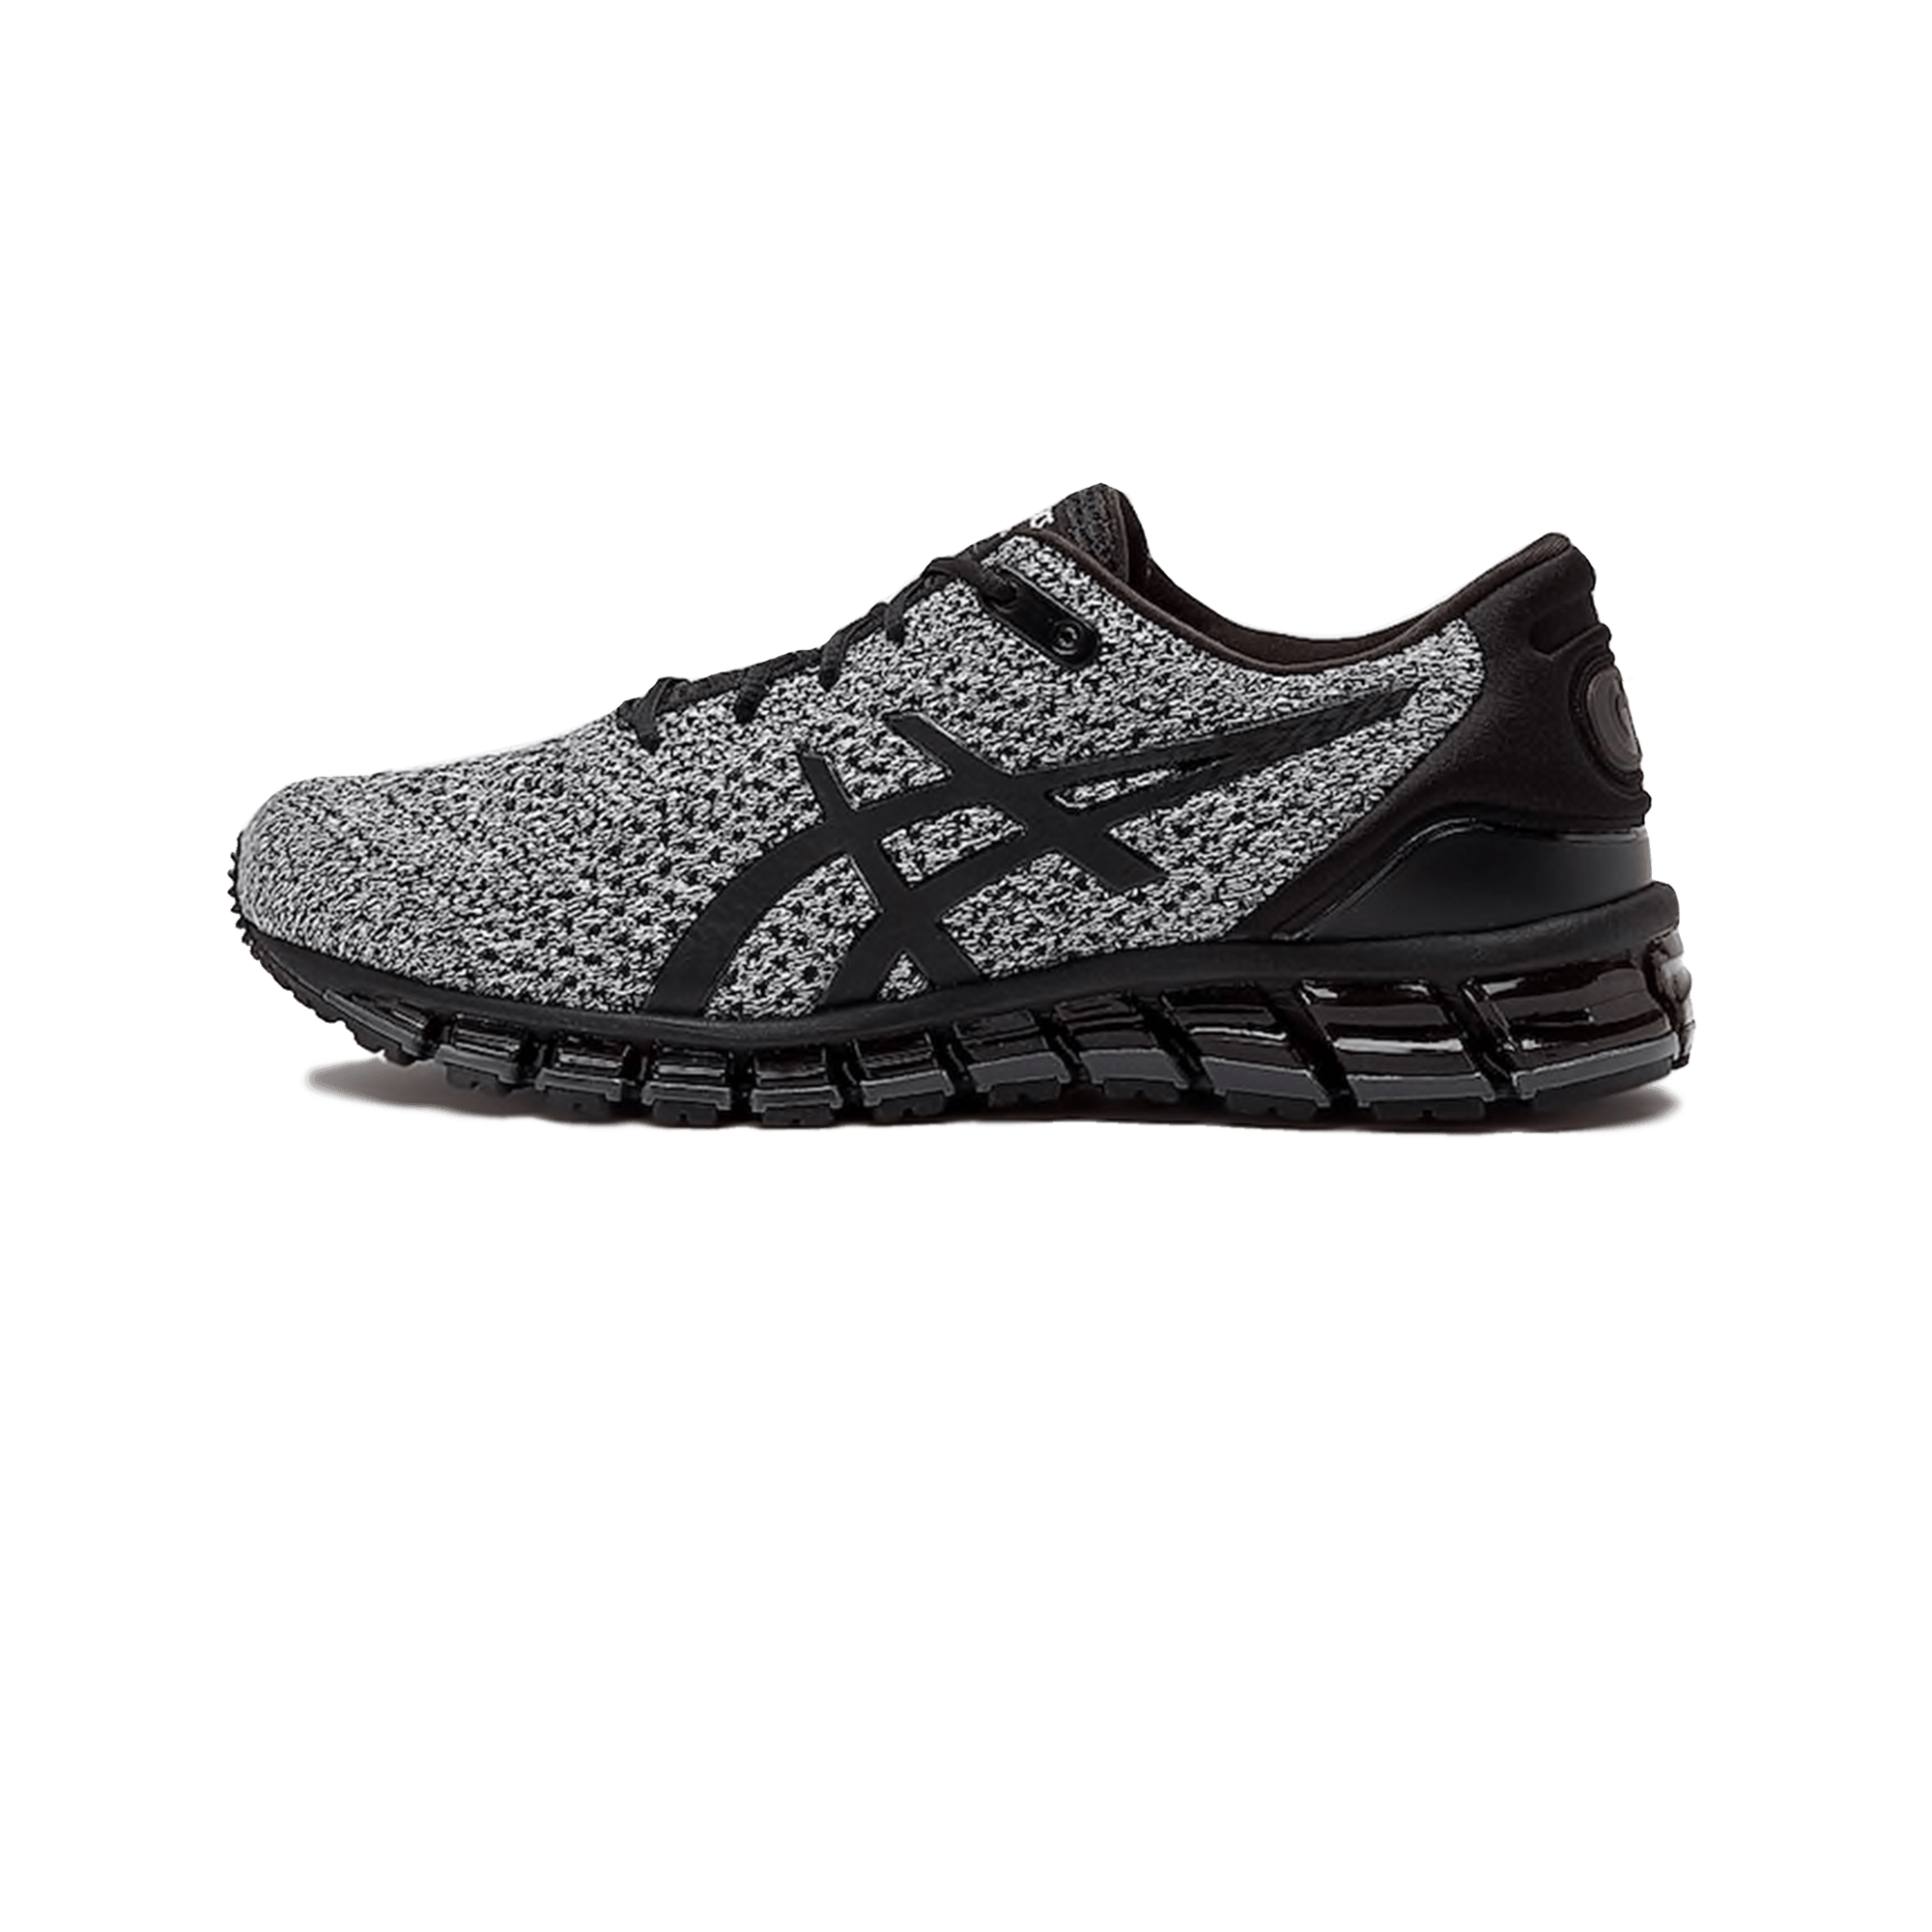 meet af806 83ee2 Asics Gel-Quantum 360 Knit black/white - Men | Holypopstore.com